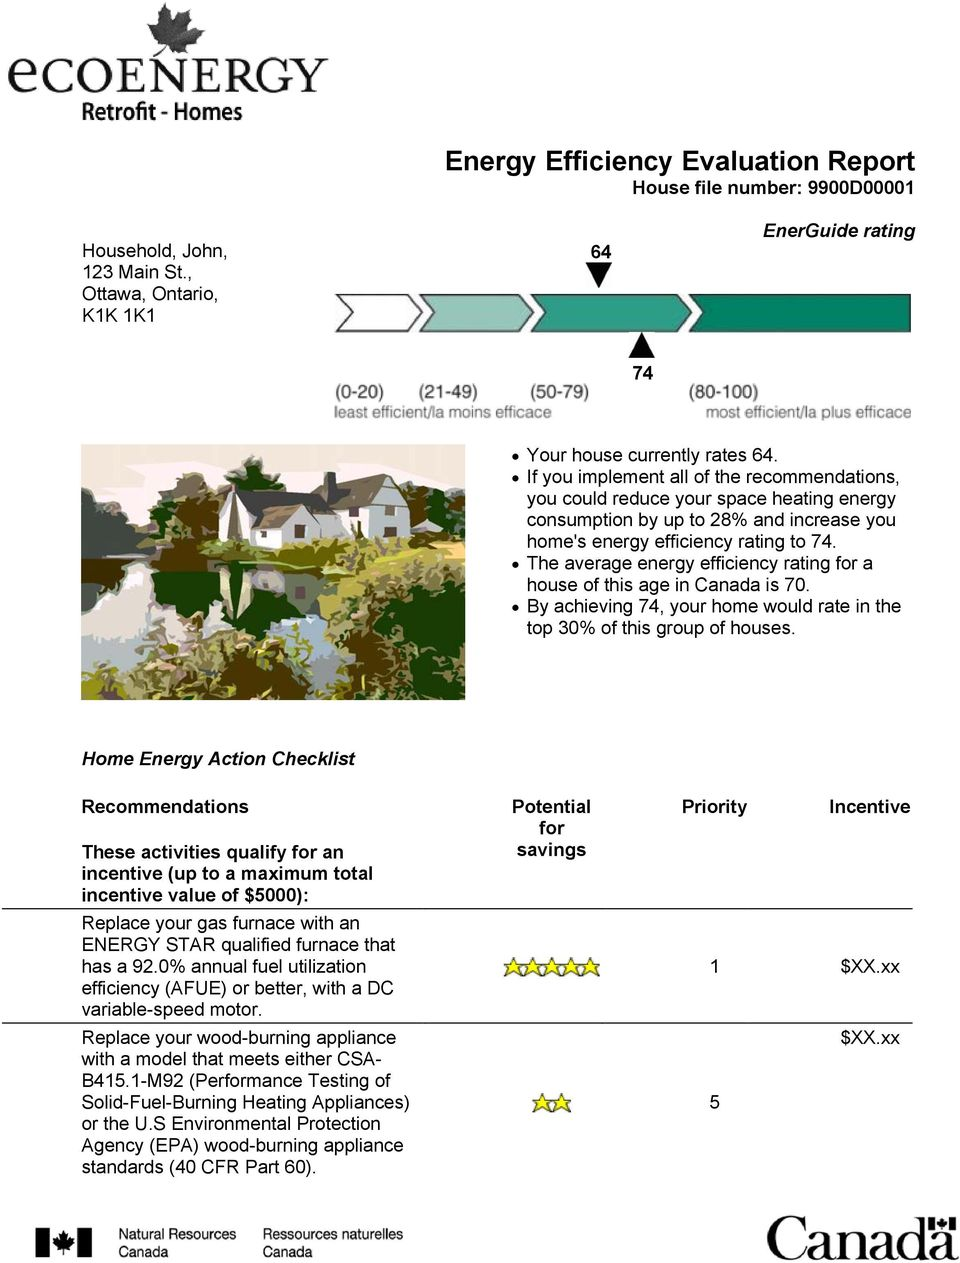 ! The average energy efficiency rating for a house of this age in Canada is 70.! By achieving 74, your home would rate in the top 30% of this group of houses.